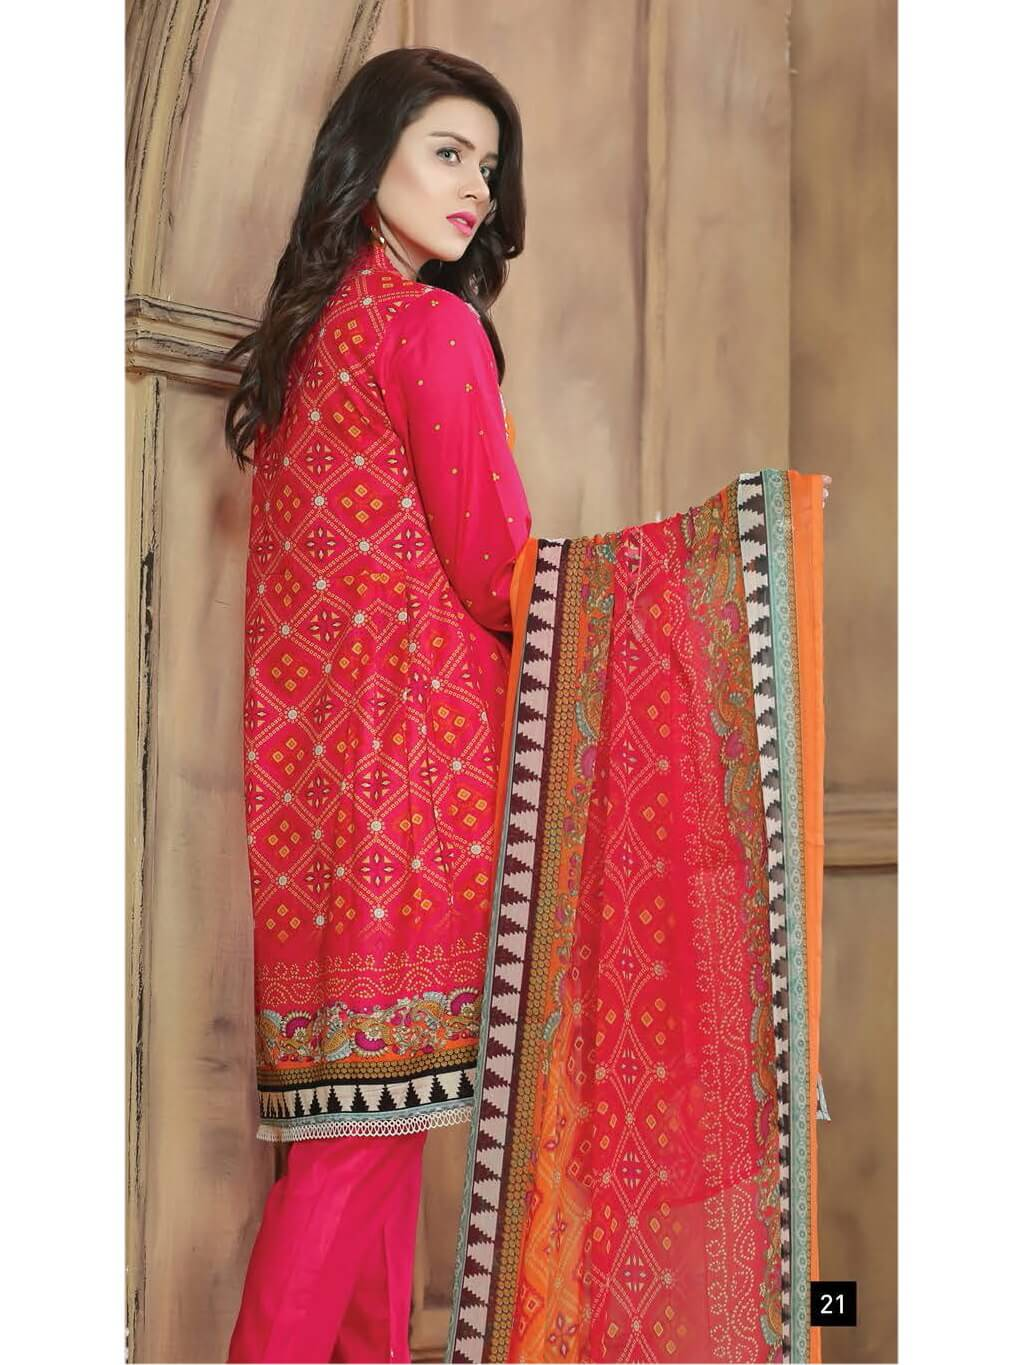 Aroosa Embroidered Lawn Summer 2019 Unstitched 3 Piece Suit MSV 19230 - FaisalFabrics.pk